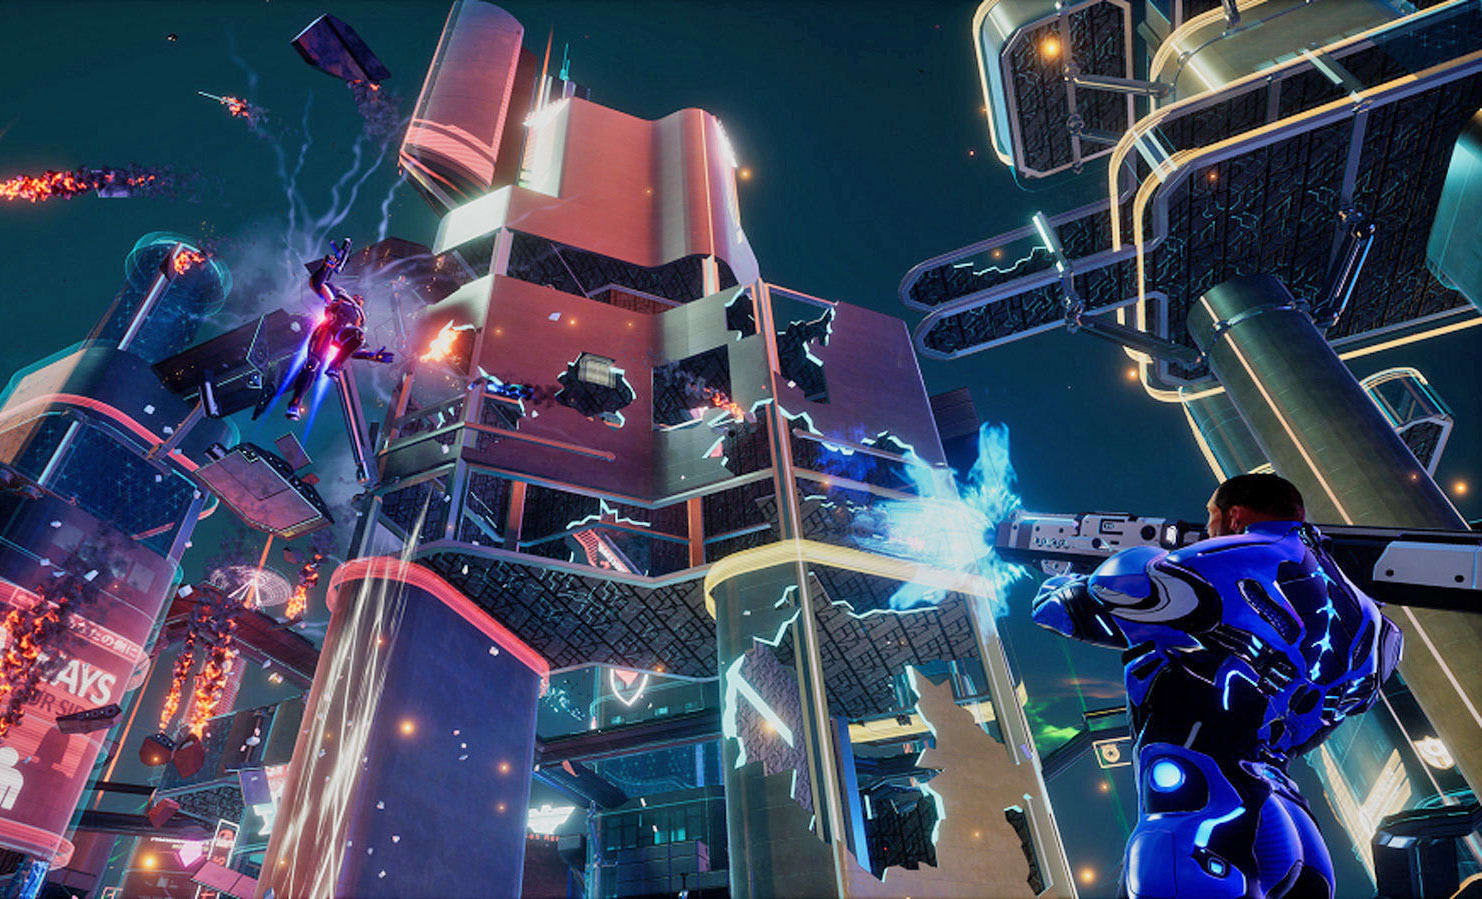 crackdown xbox one online multiplayer